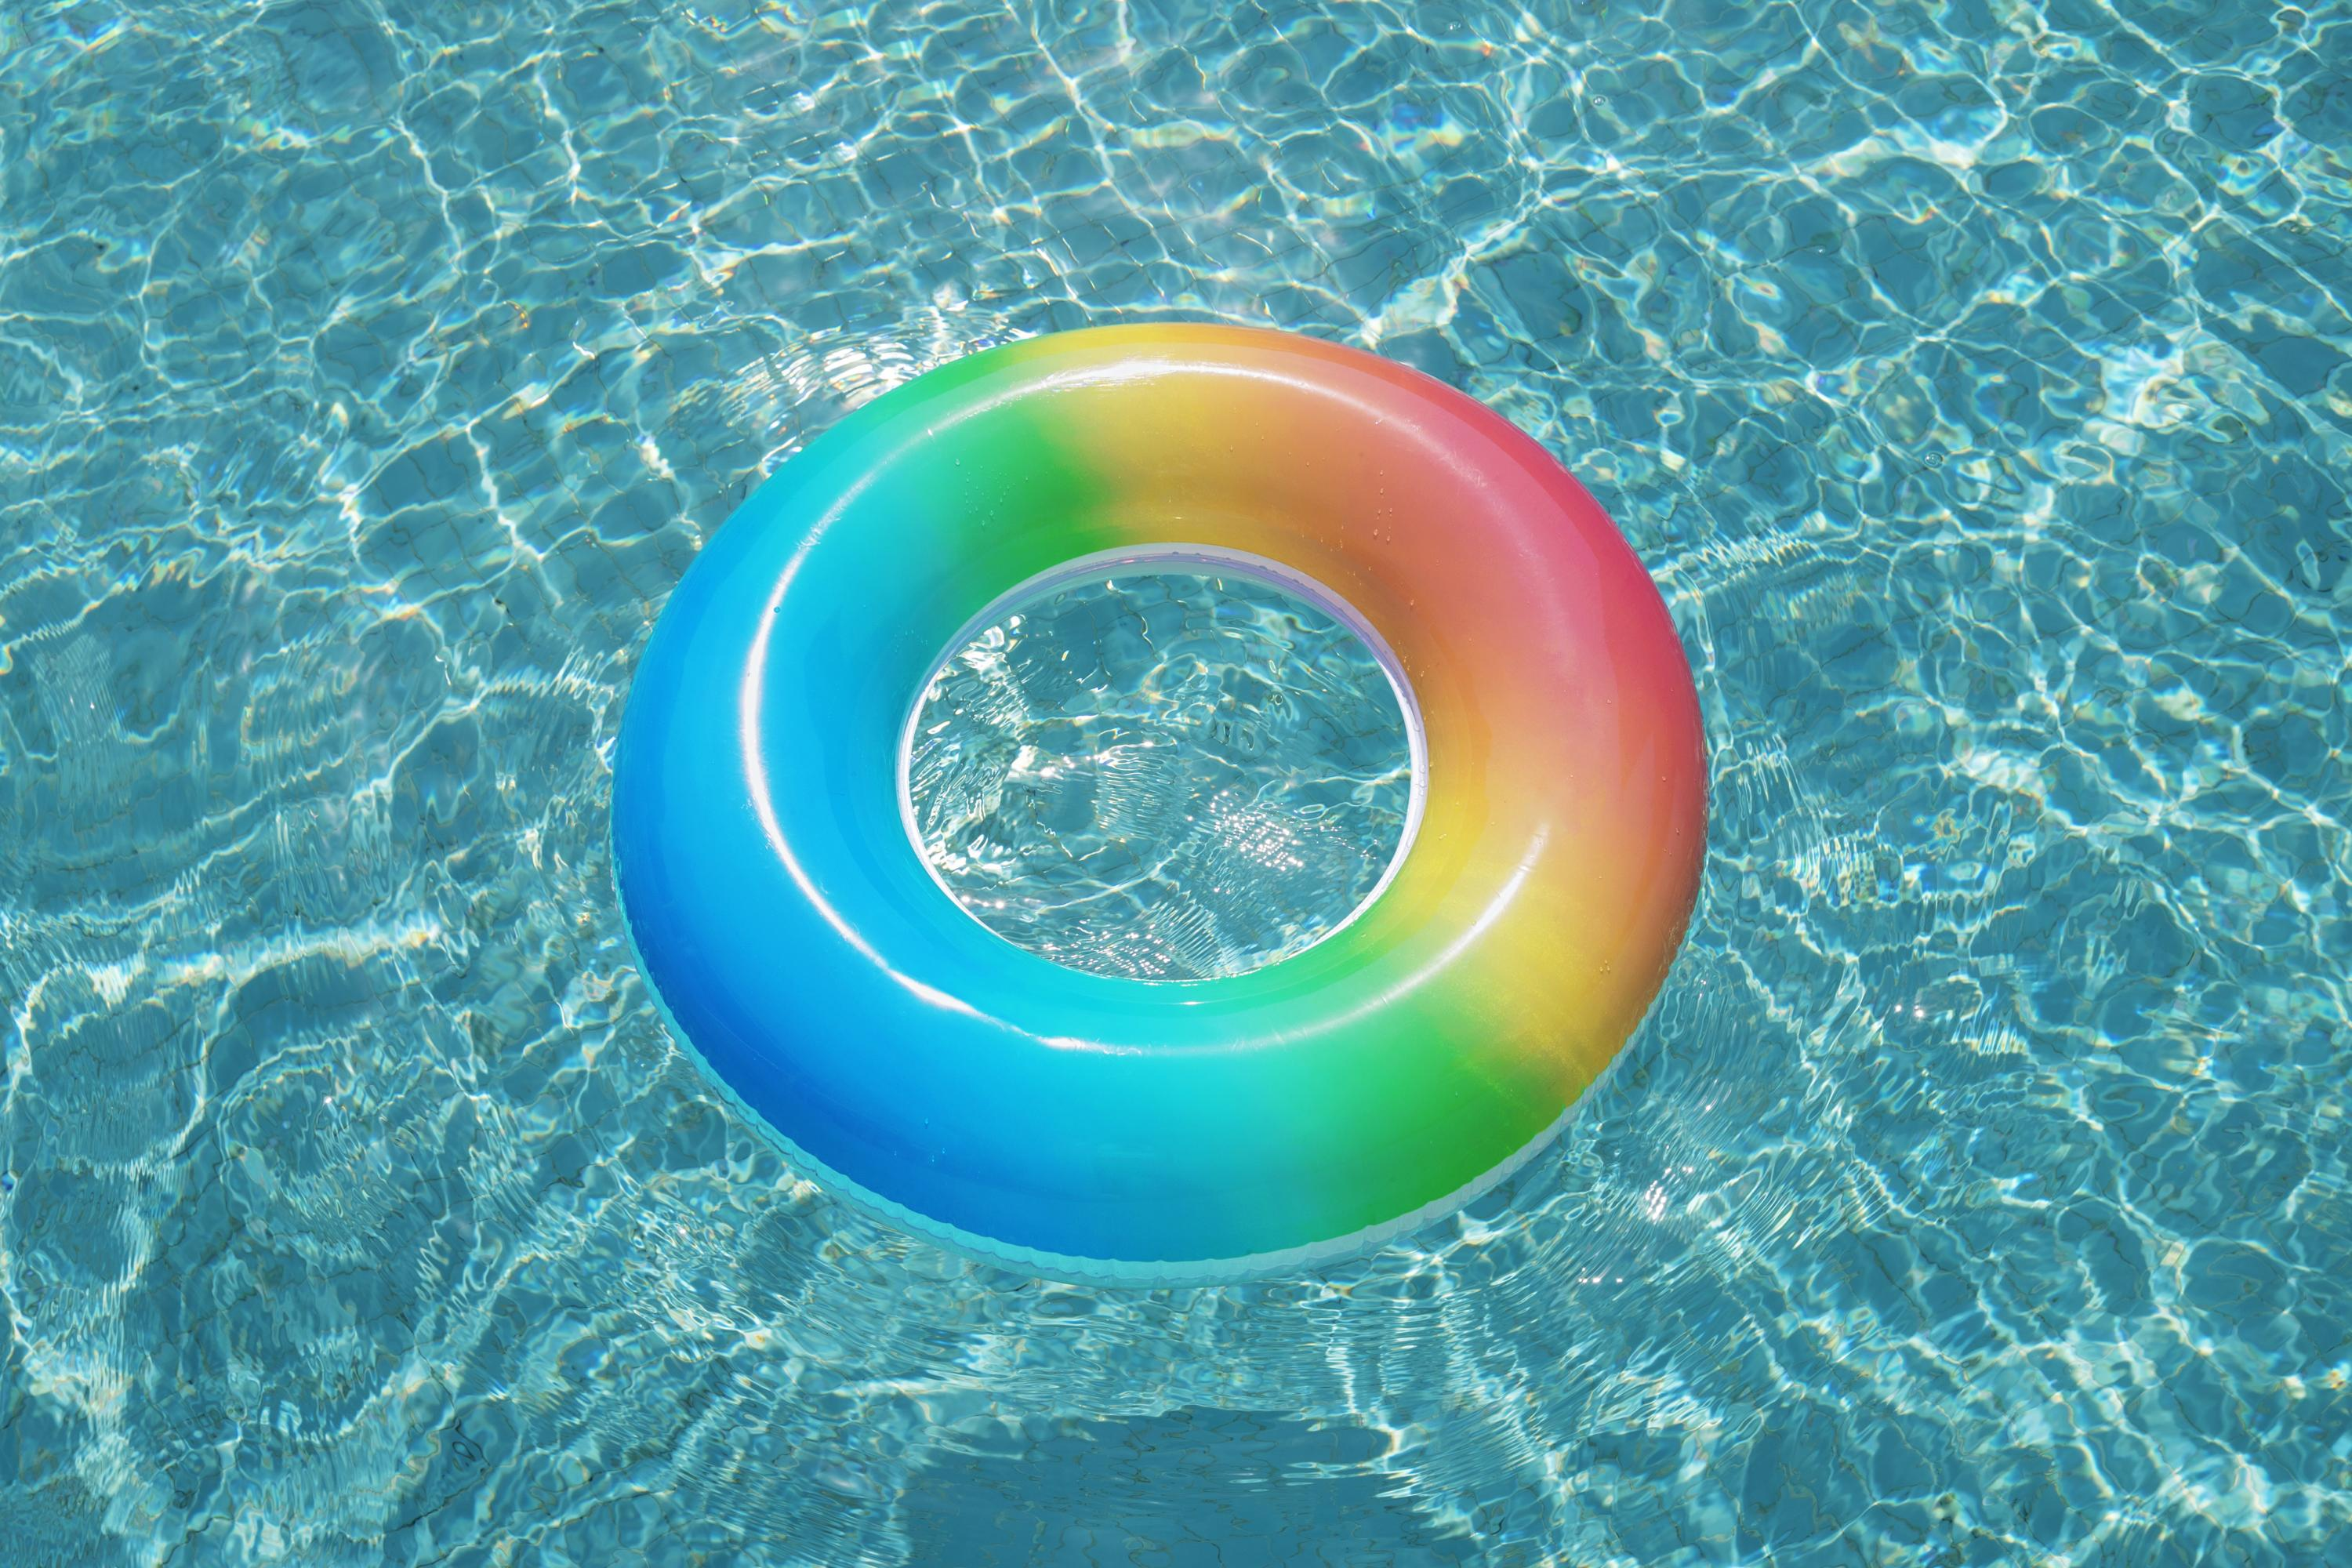 Rainbow Swim Ring